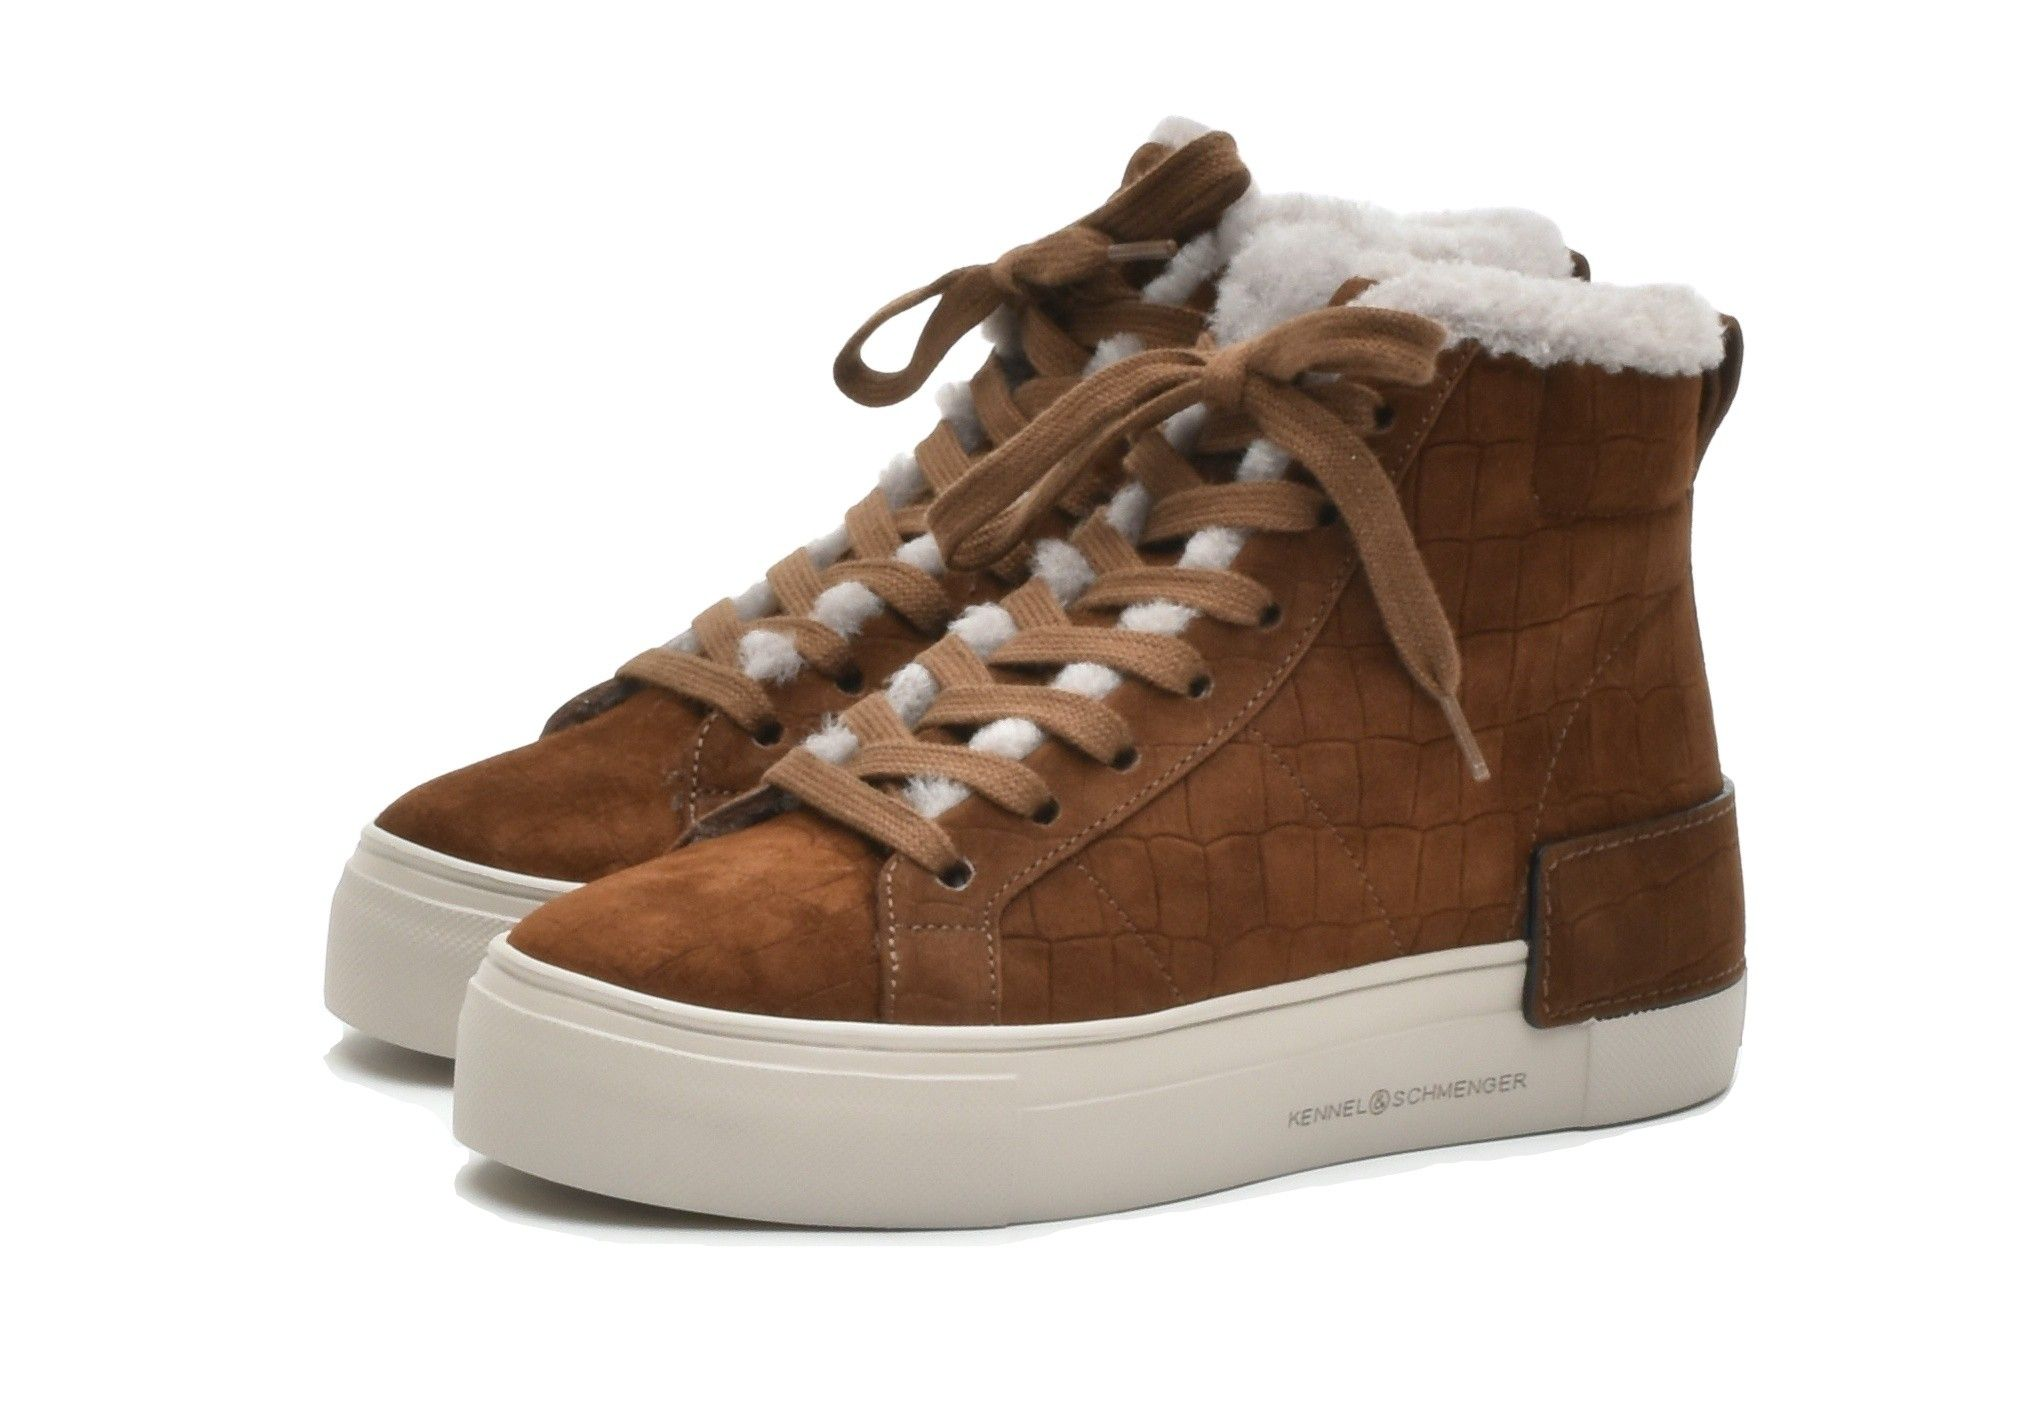 KENNEL & SCHMENGER - Damen Schuhe - High Top Sneaker - Tonga